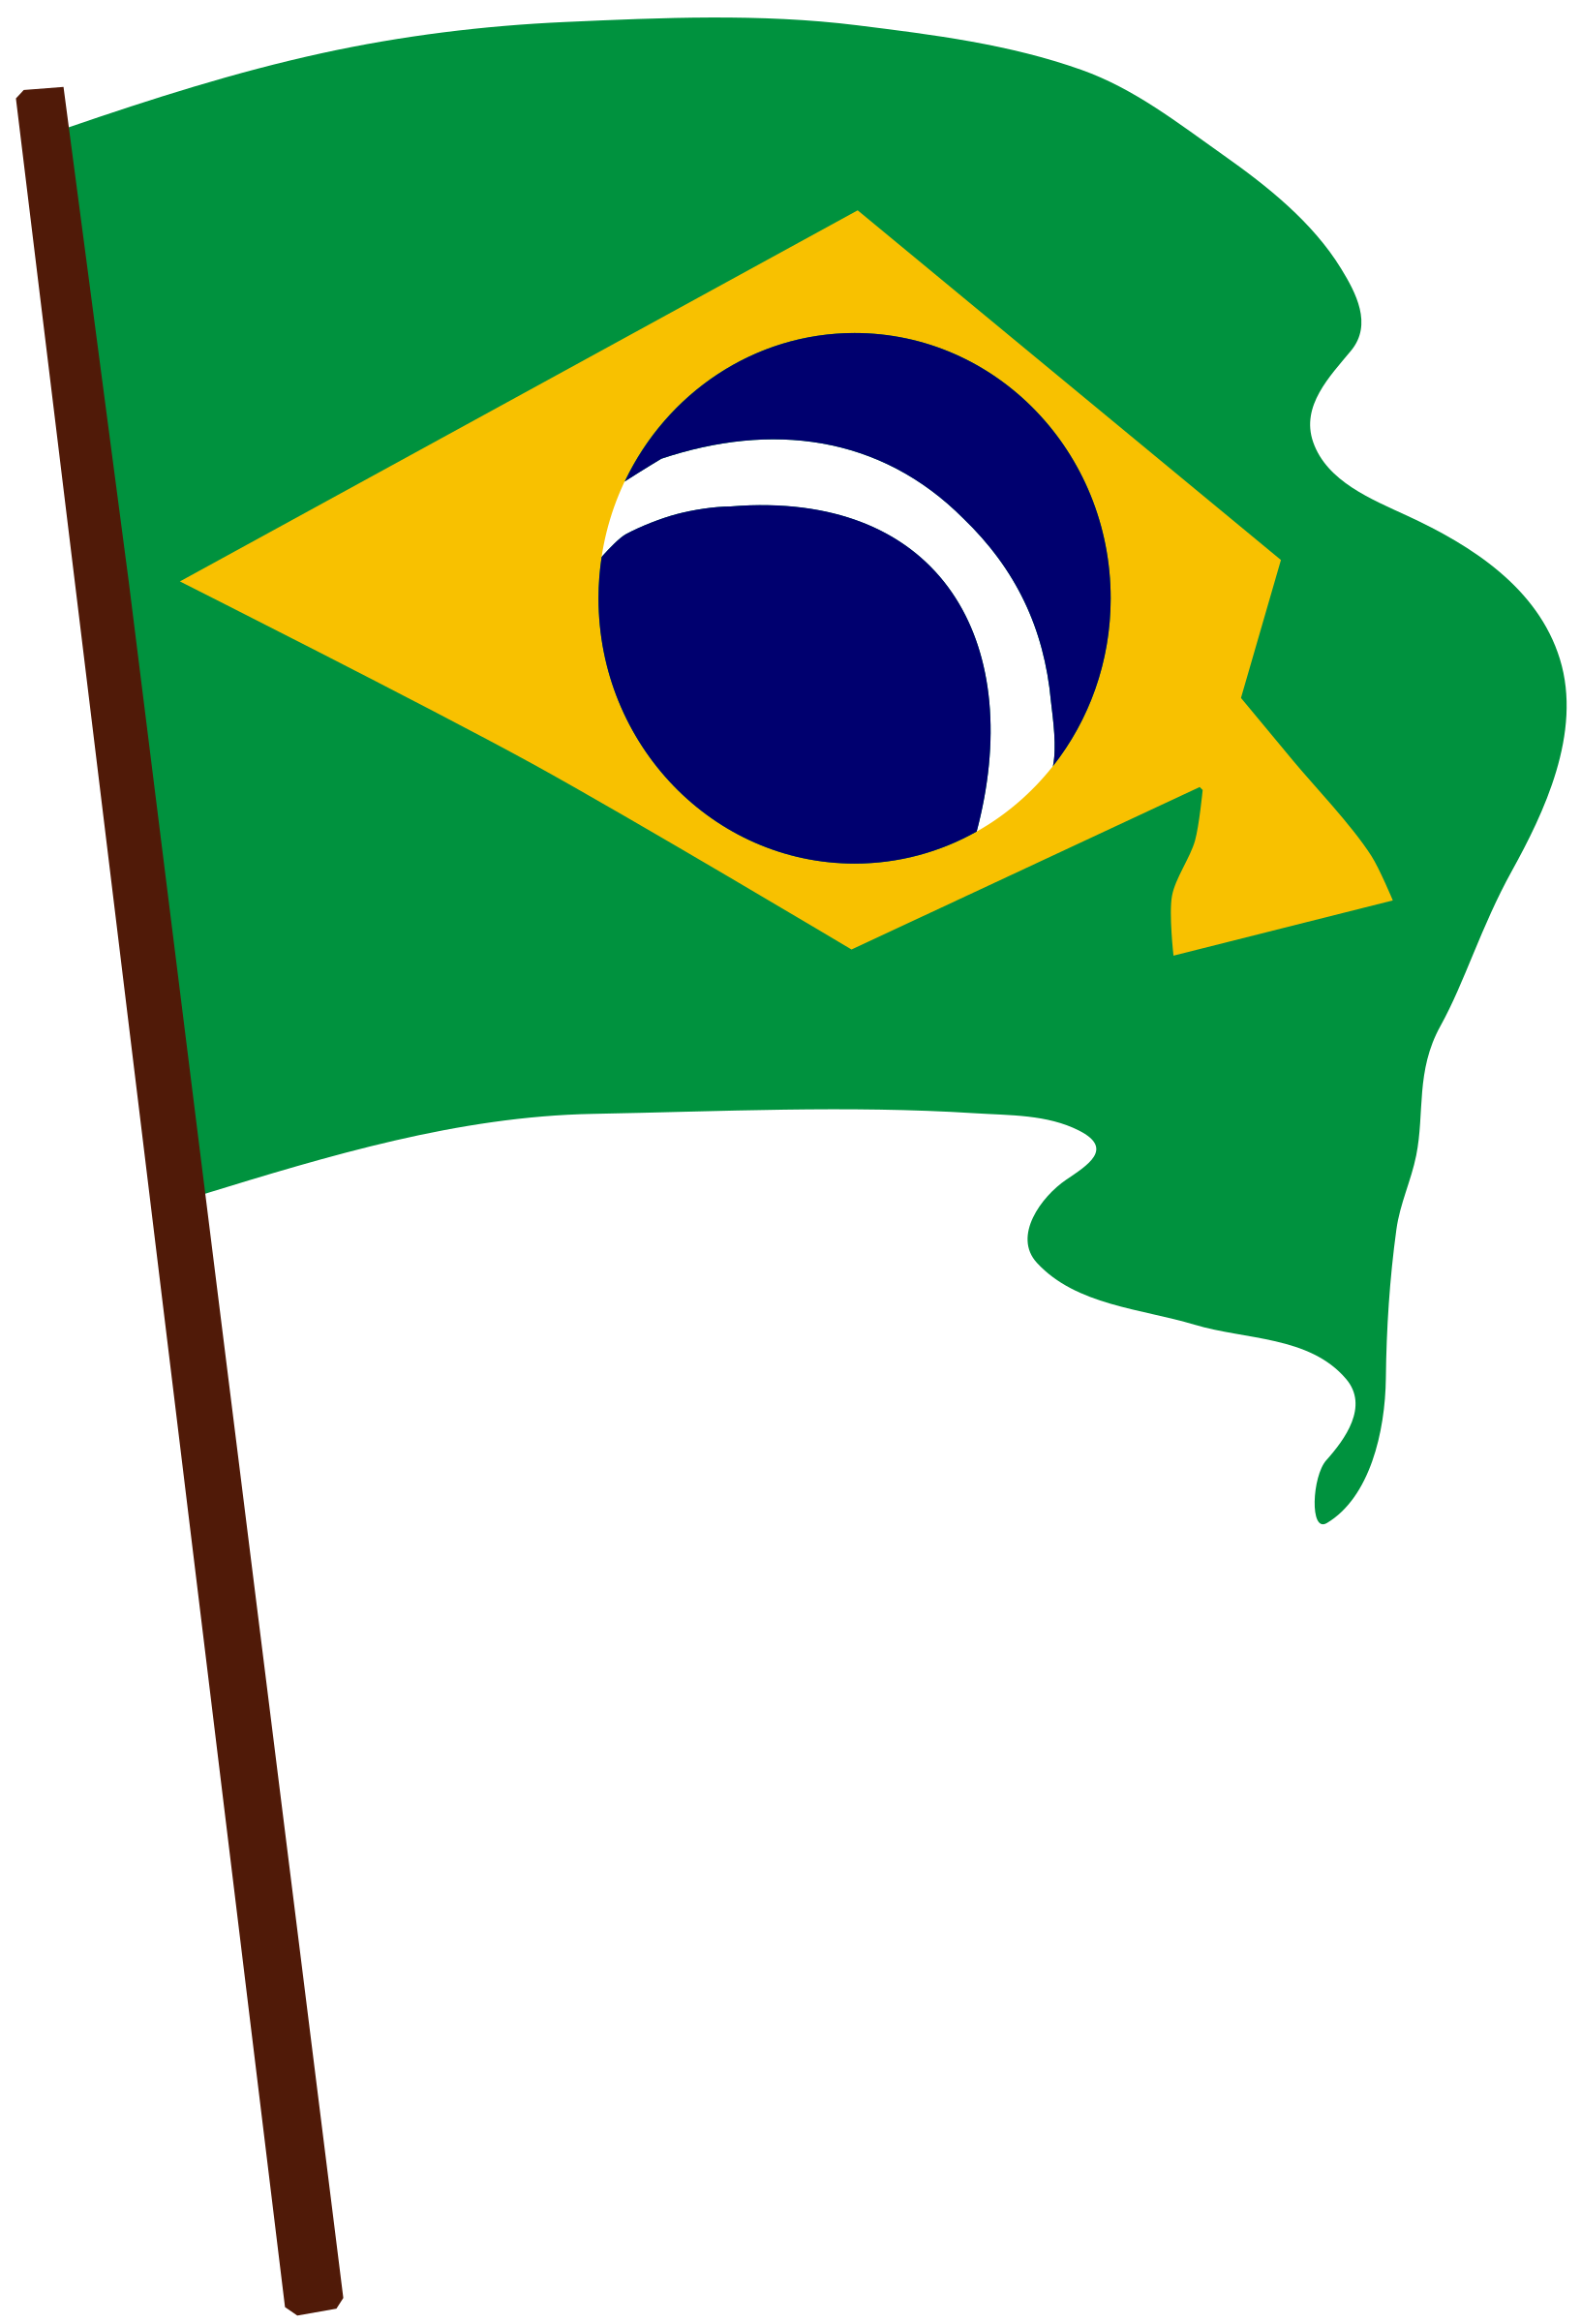 Flag of Brazil by laobc